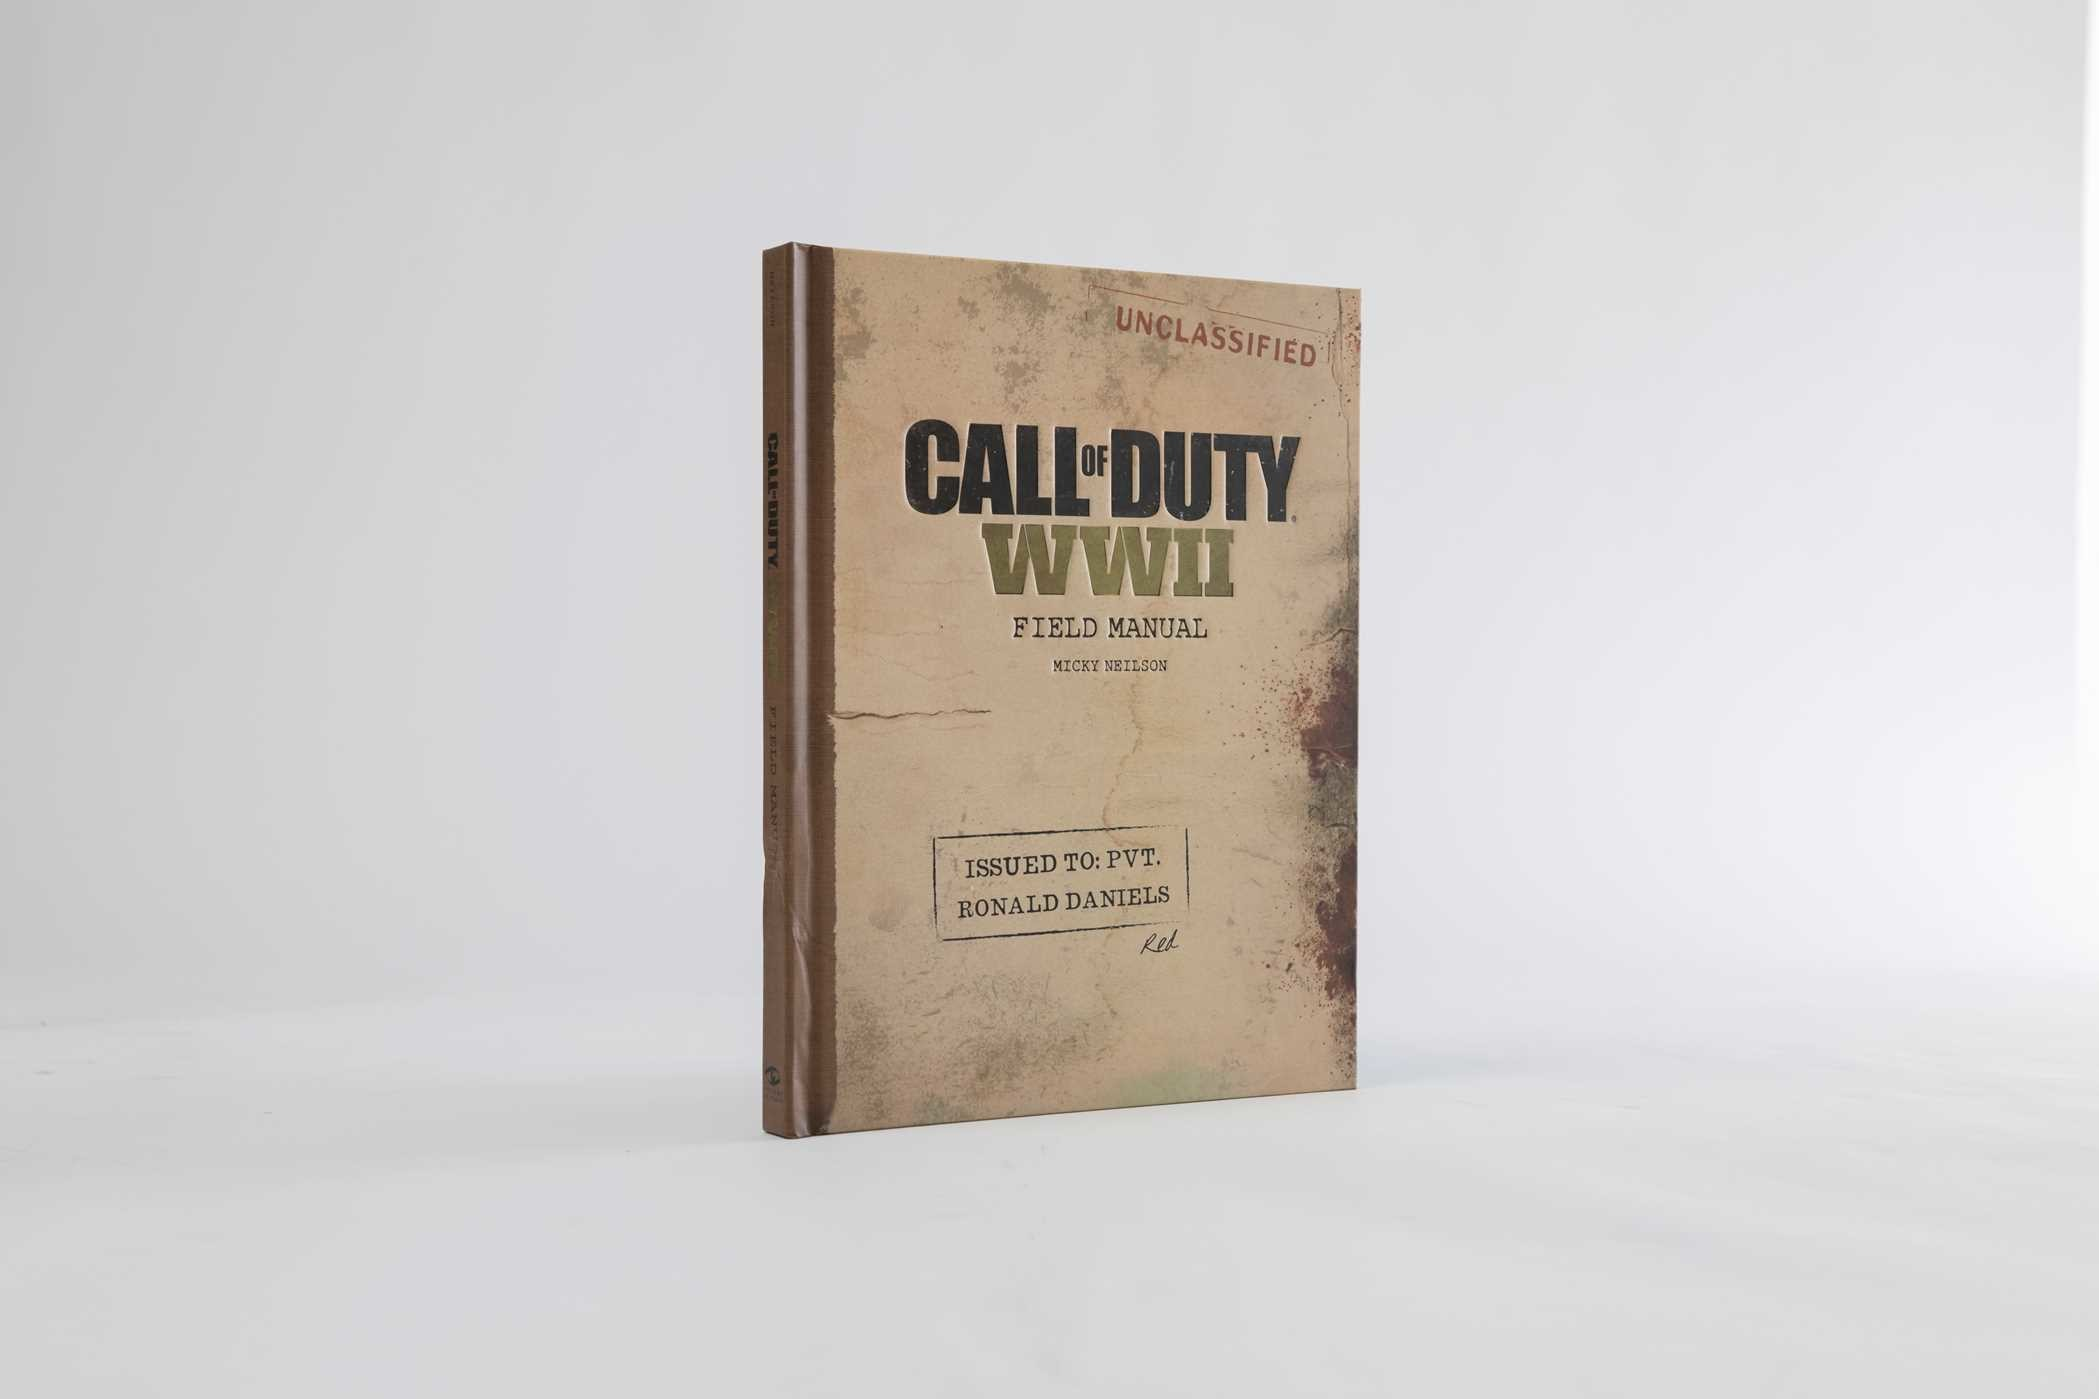 Call of duty wwii field manual 9781608879342.in07